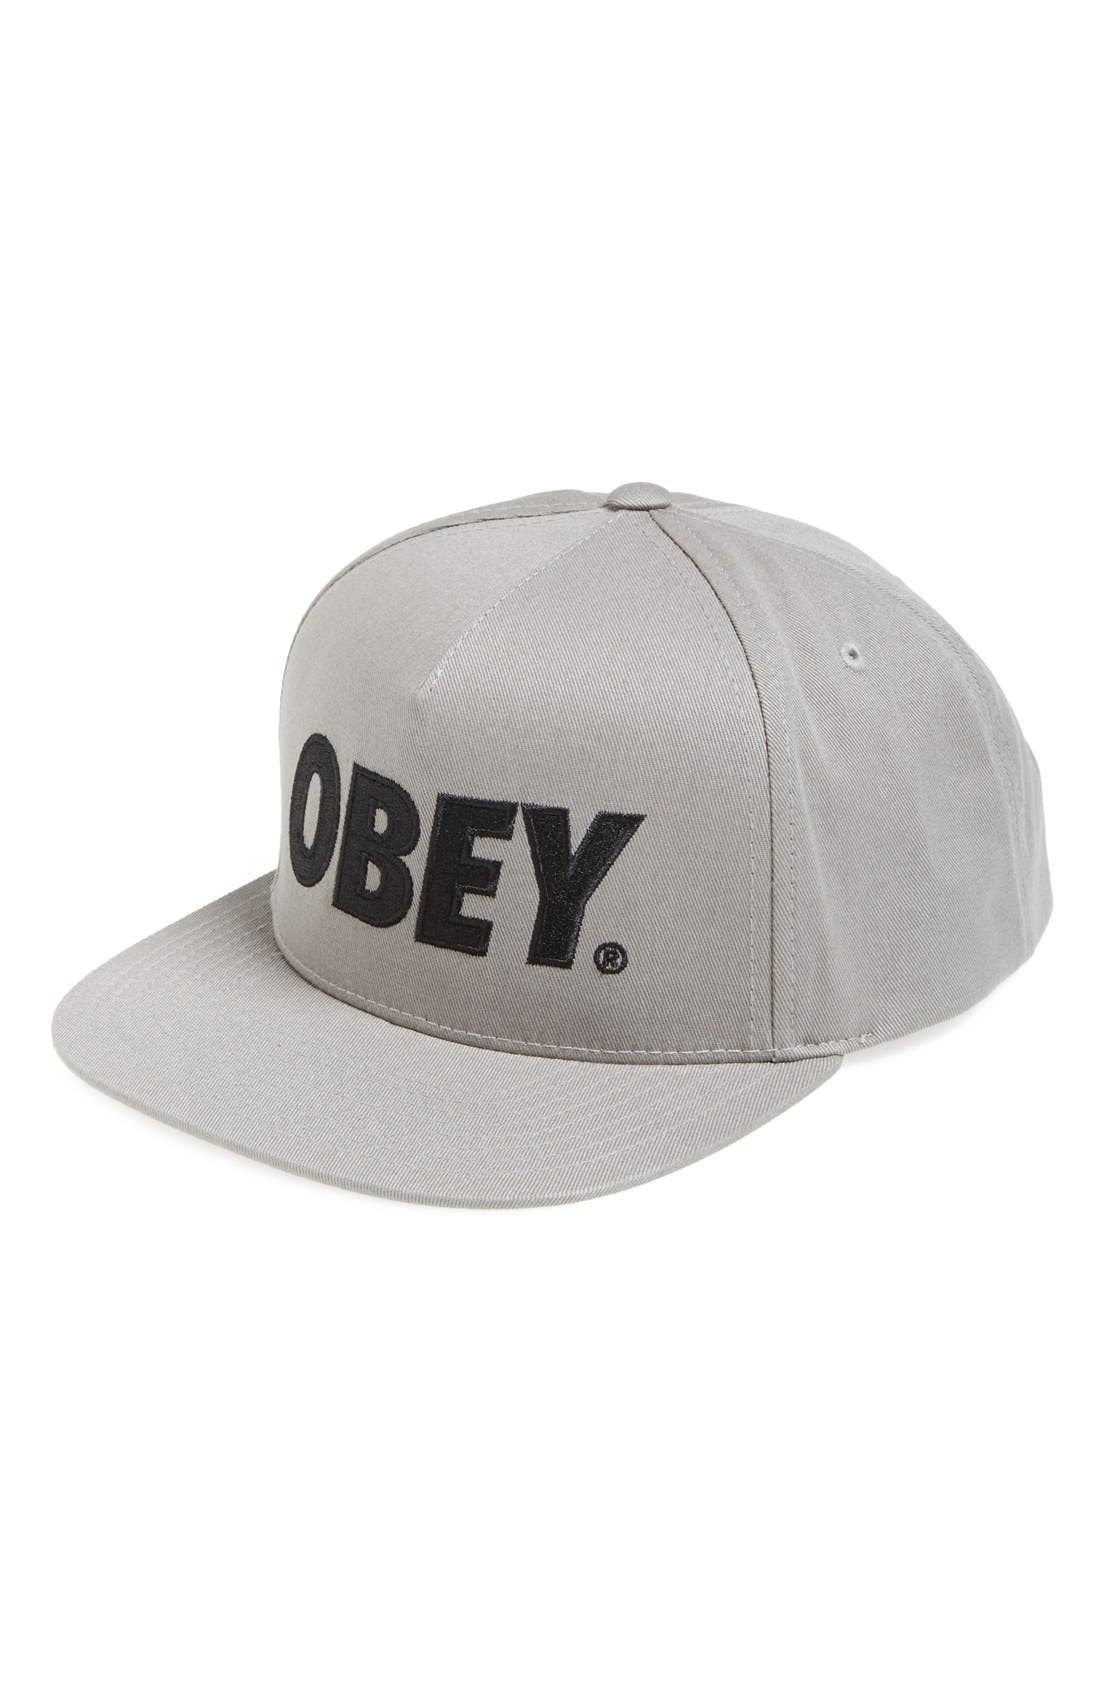 Main Image - Obey 'The City' Snapback Baseball Cap